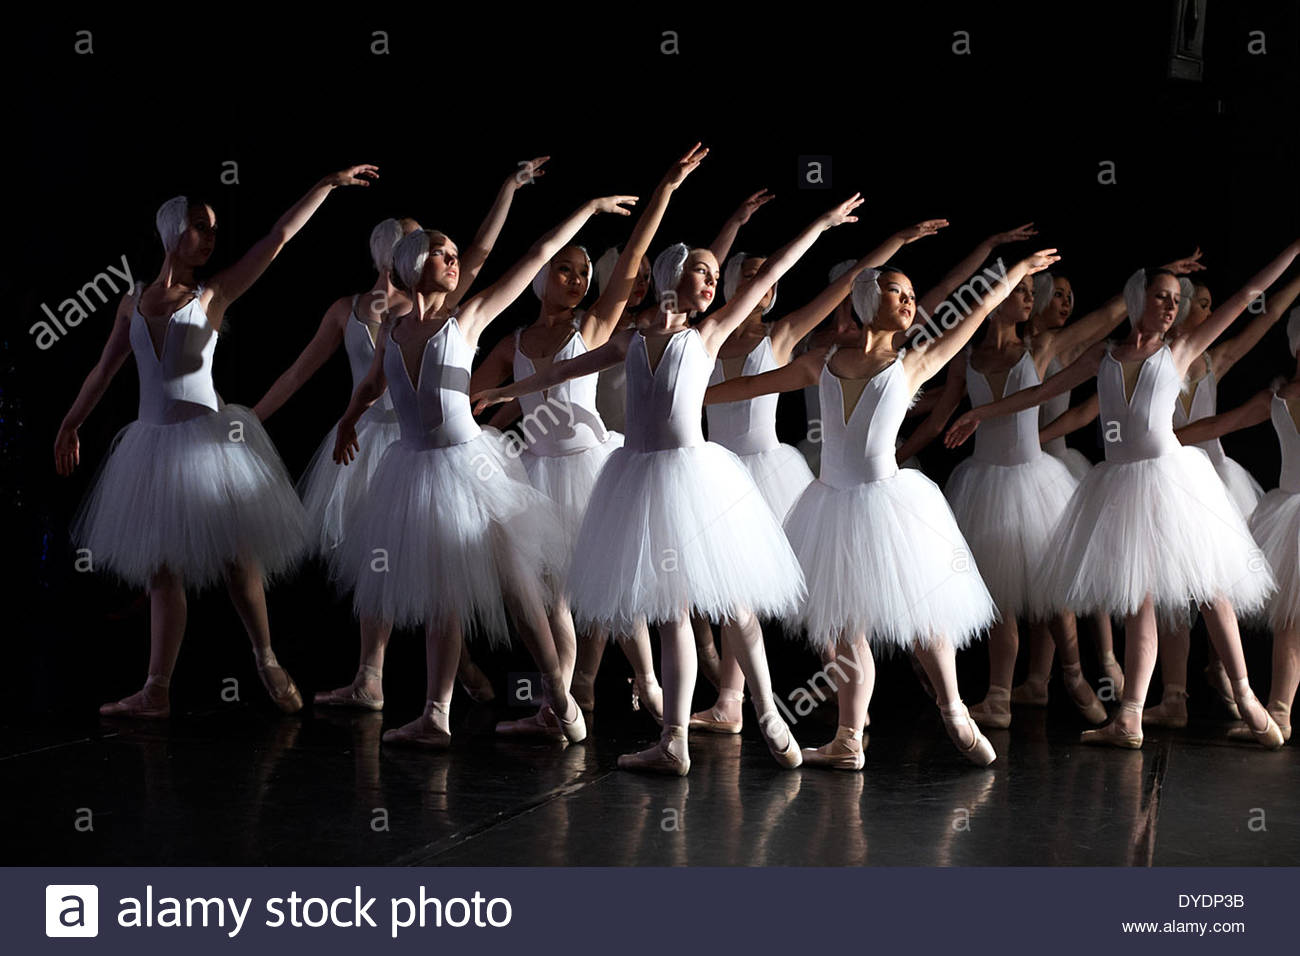 swan lake romantic ballet We dance, of course, for joy but ballet, with its built-in dichotomy of gender roles (women alone rise on point, men alone may do the partnering), has a romantic tension that can seem.